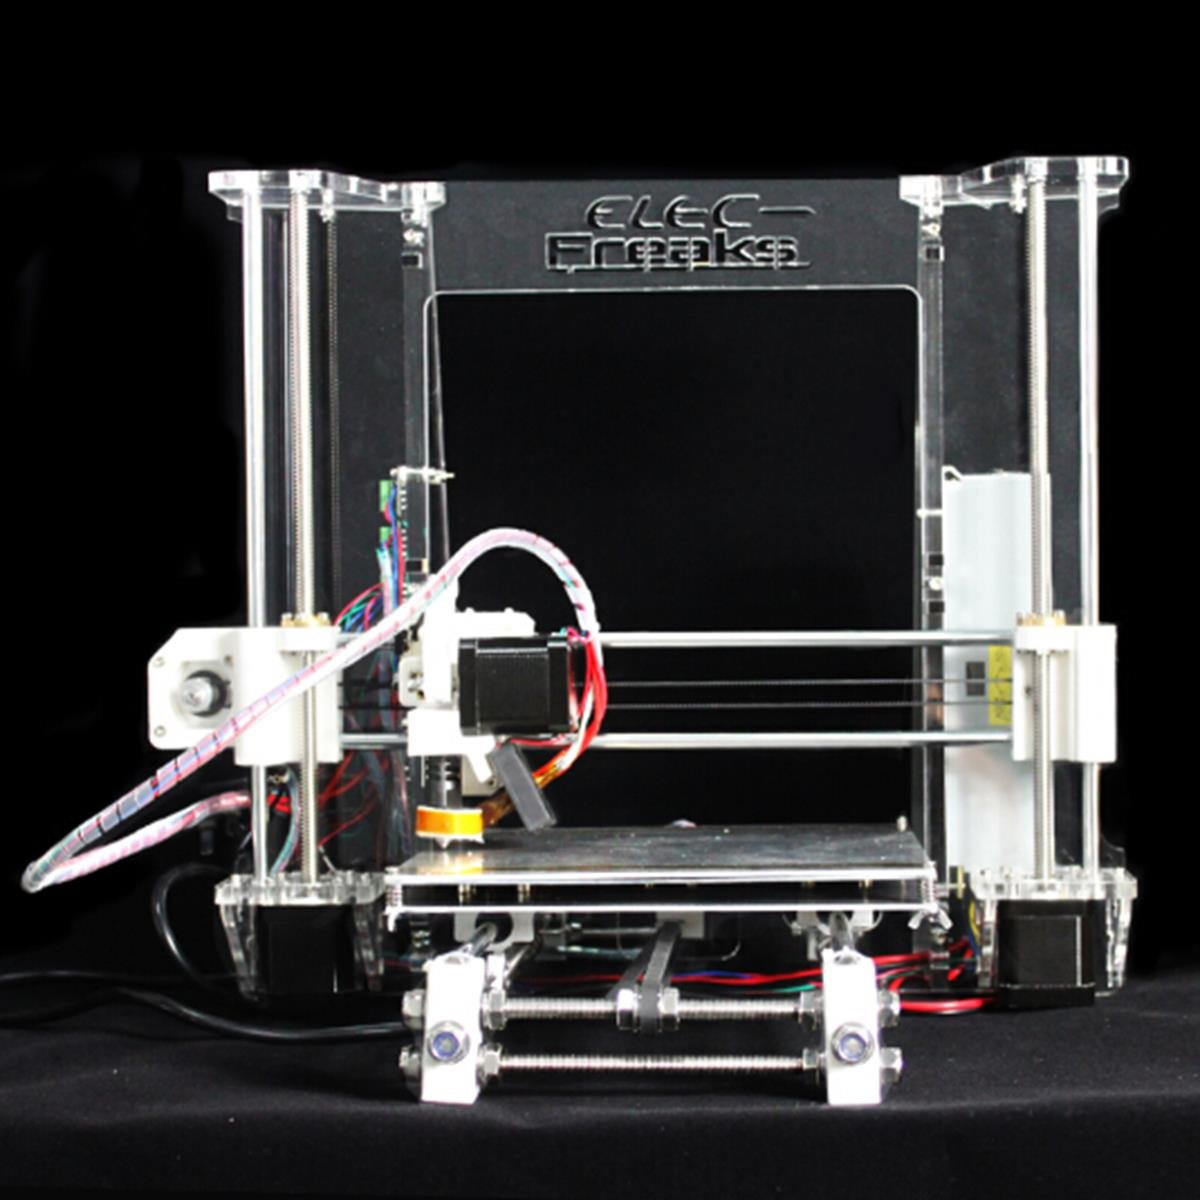 3D Printer Reprap Boards Prusa I3 Full Eboti3 Reprap Prusa I3 (Aluminium Frame) Full Kit 3d принтер prusa i3 reco